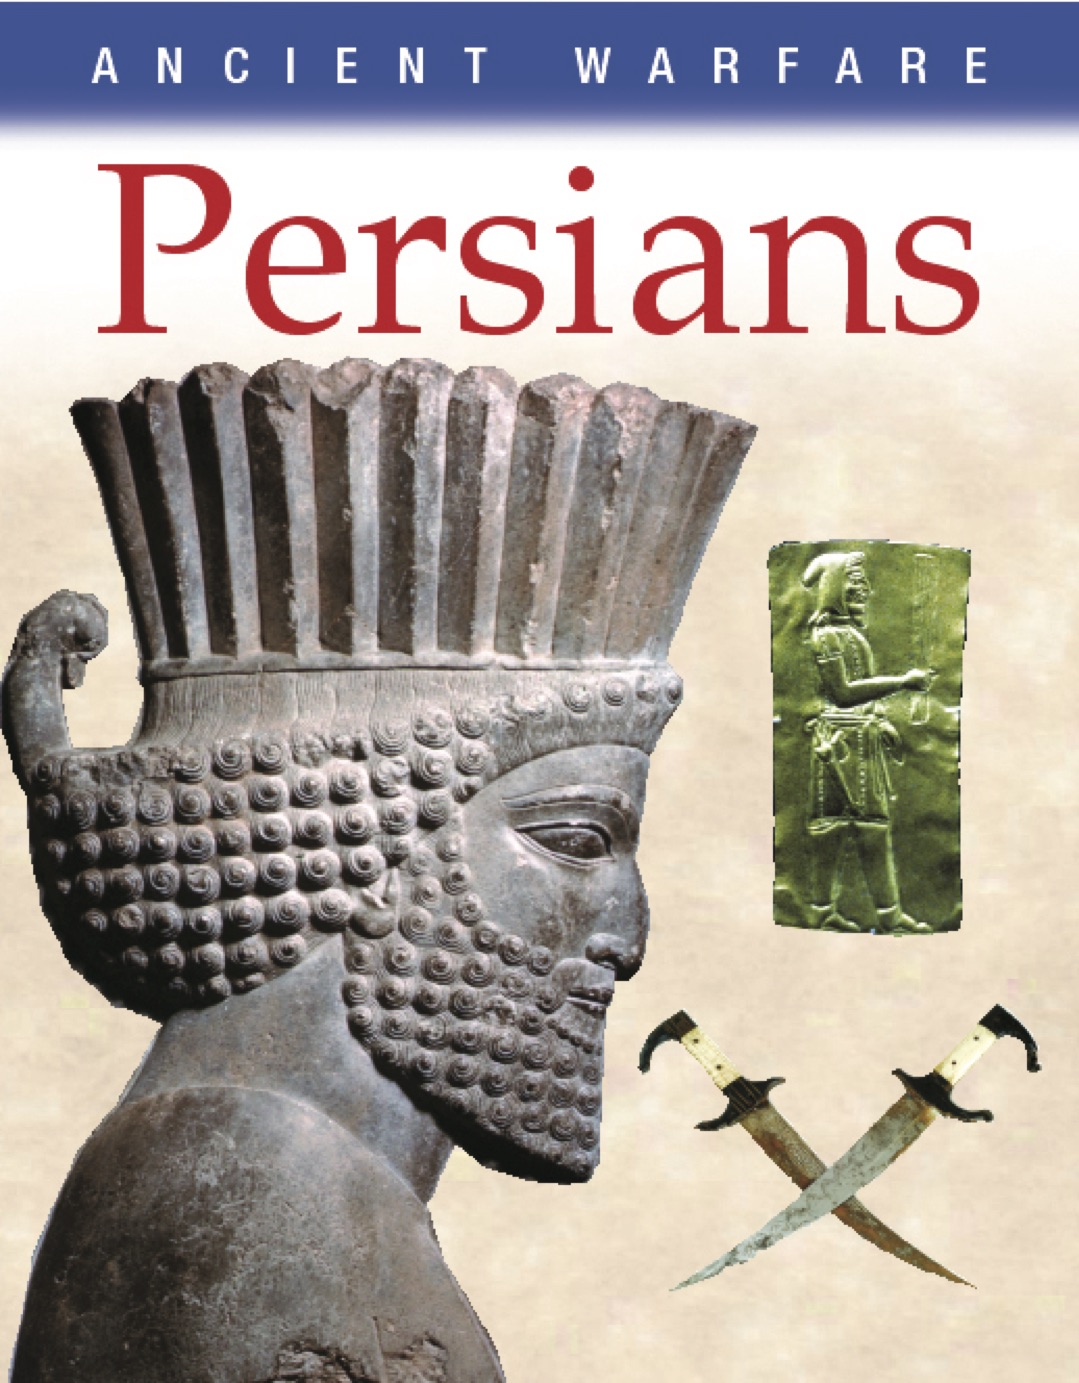 Ancient Warfare: Persians